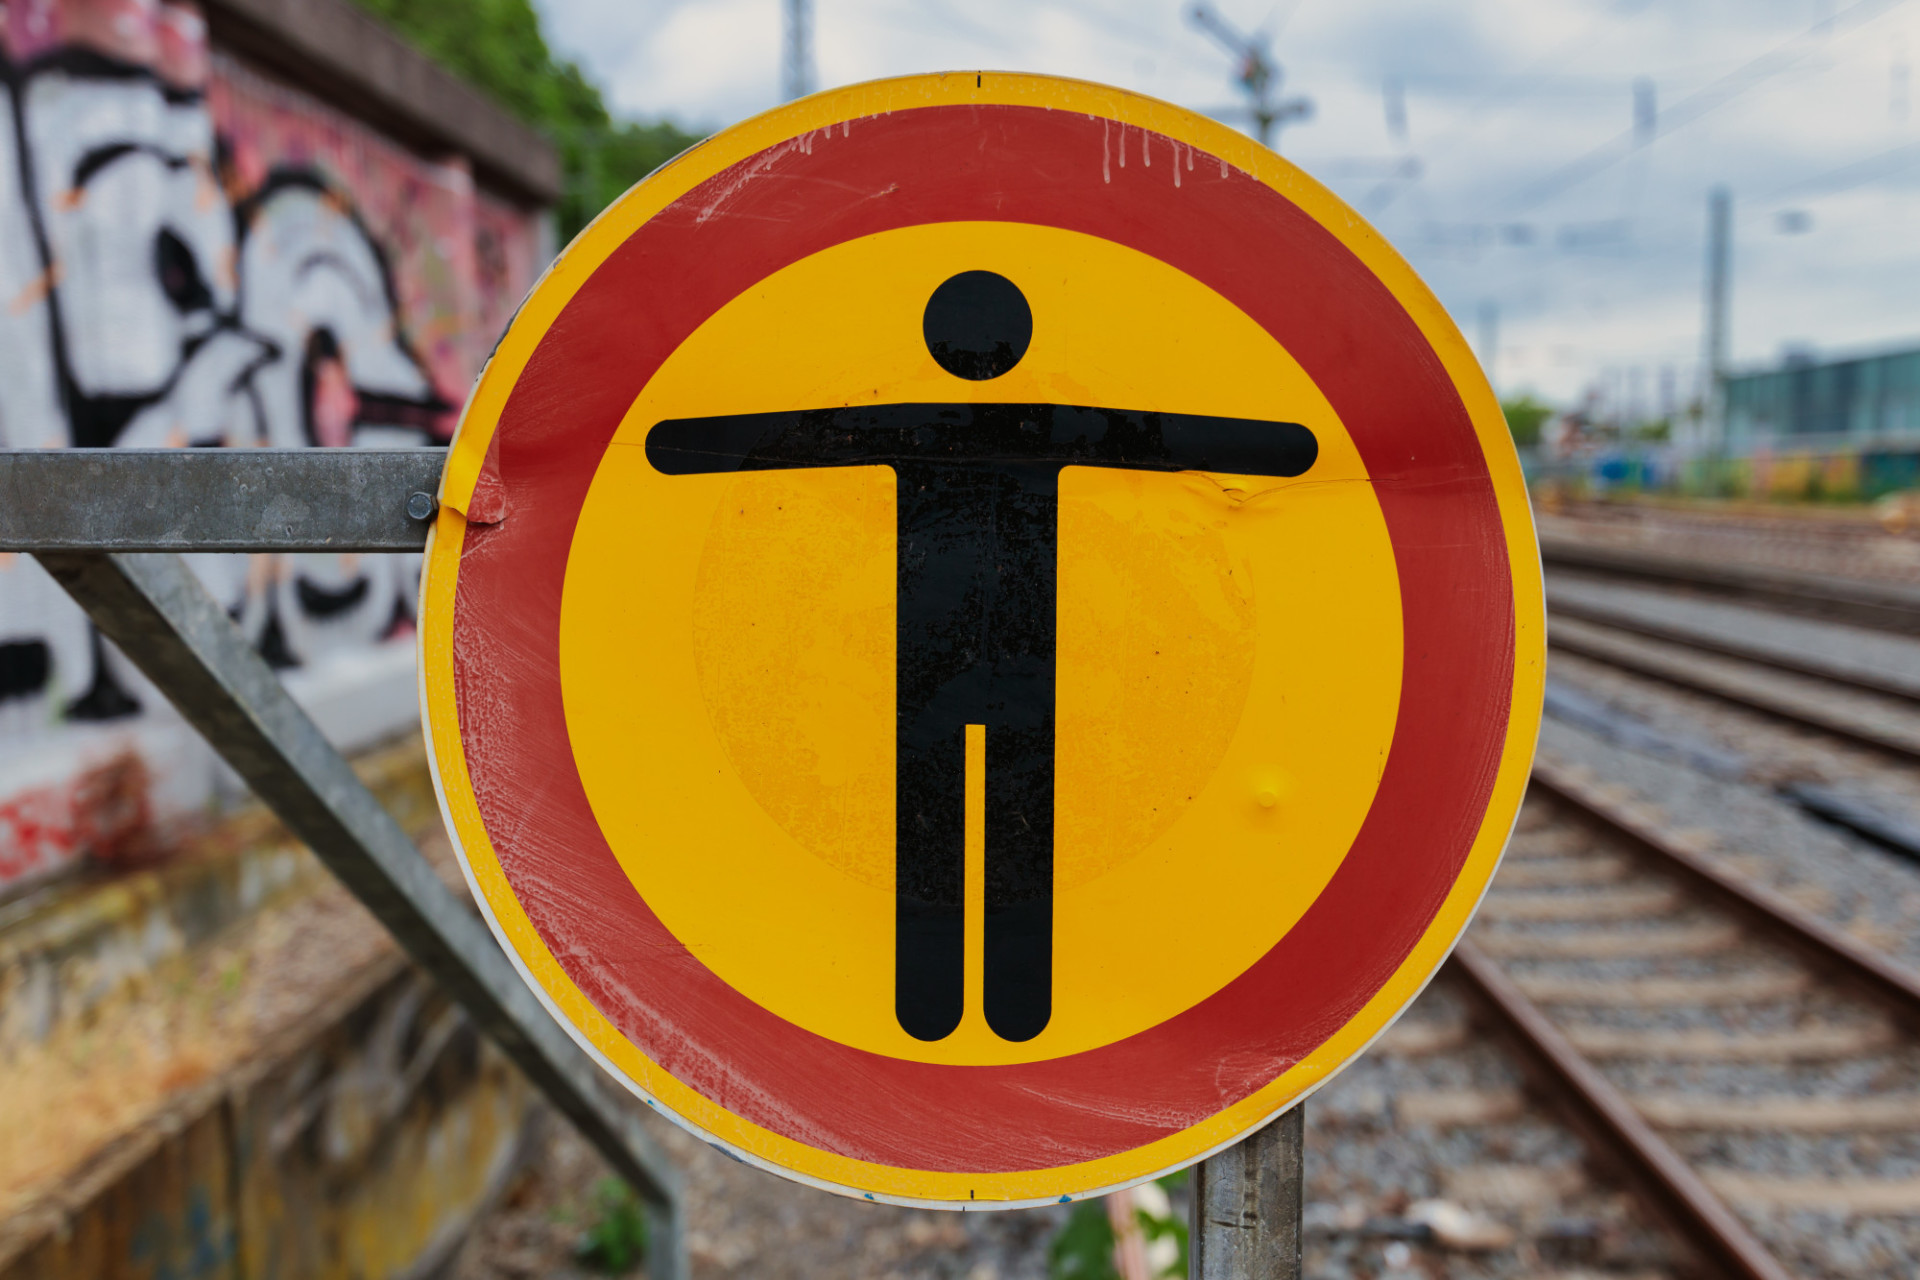 Warning sign on the railway track